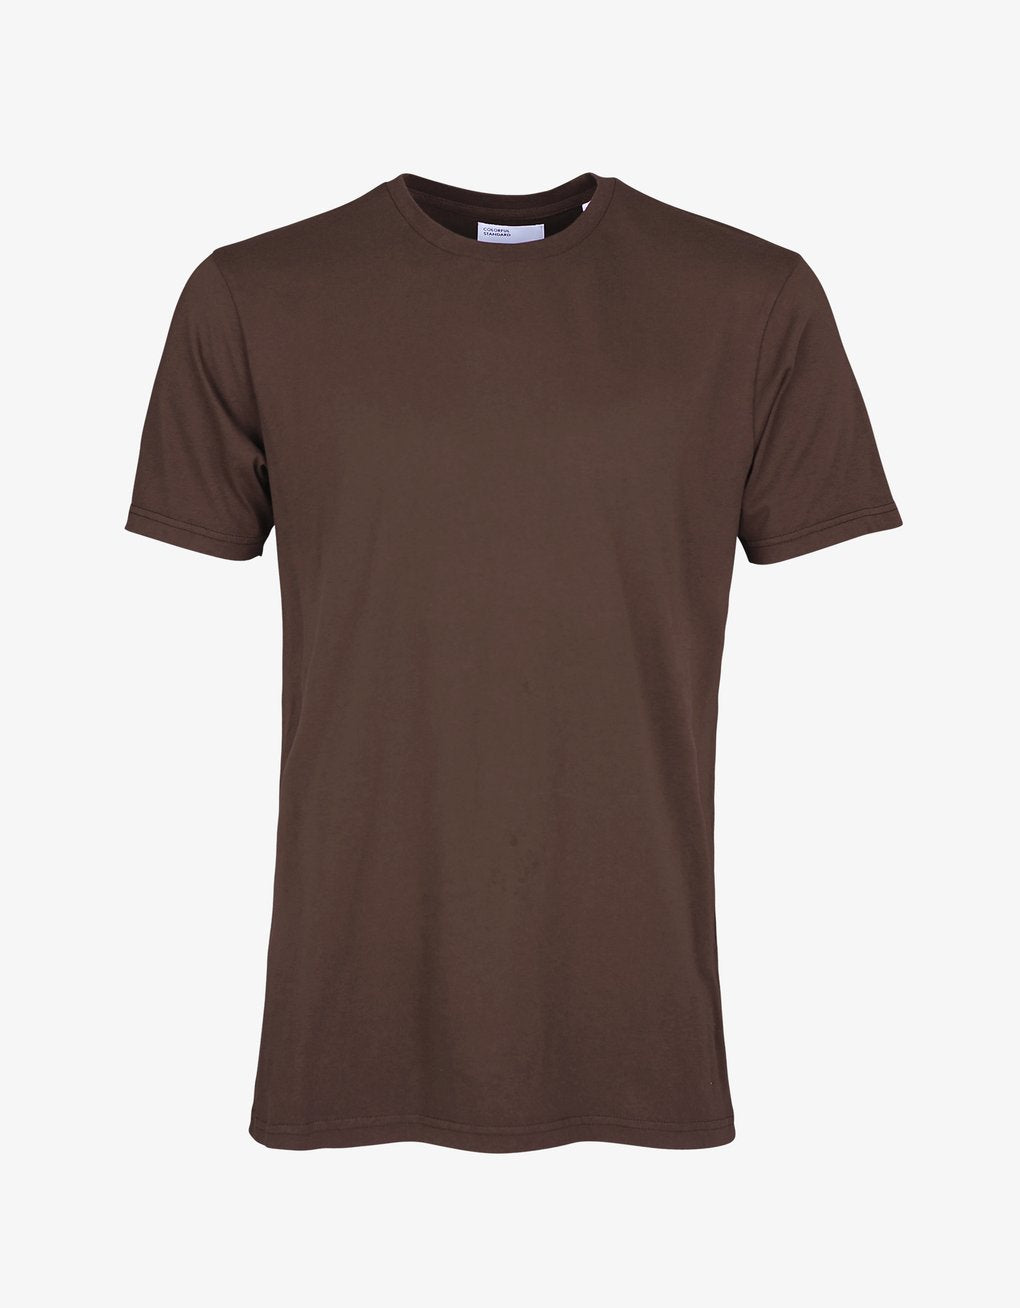 COLORFUL STANDARD | Classic Organic T-shirt | Coffee Brown - LONDØNWORKS